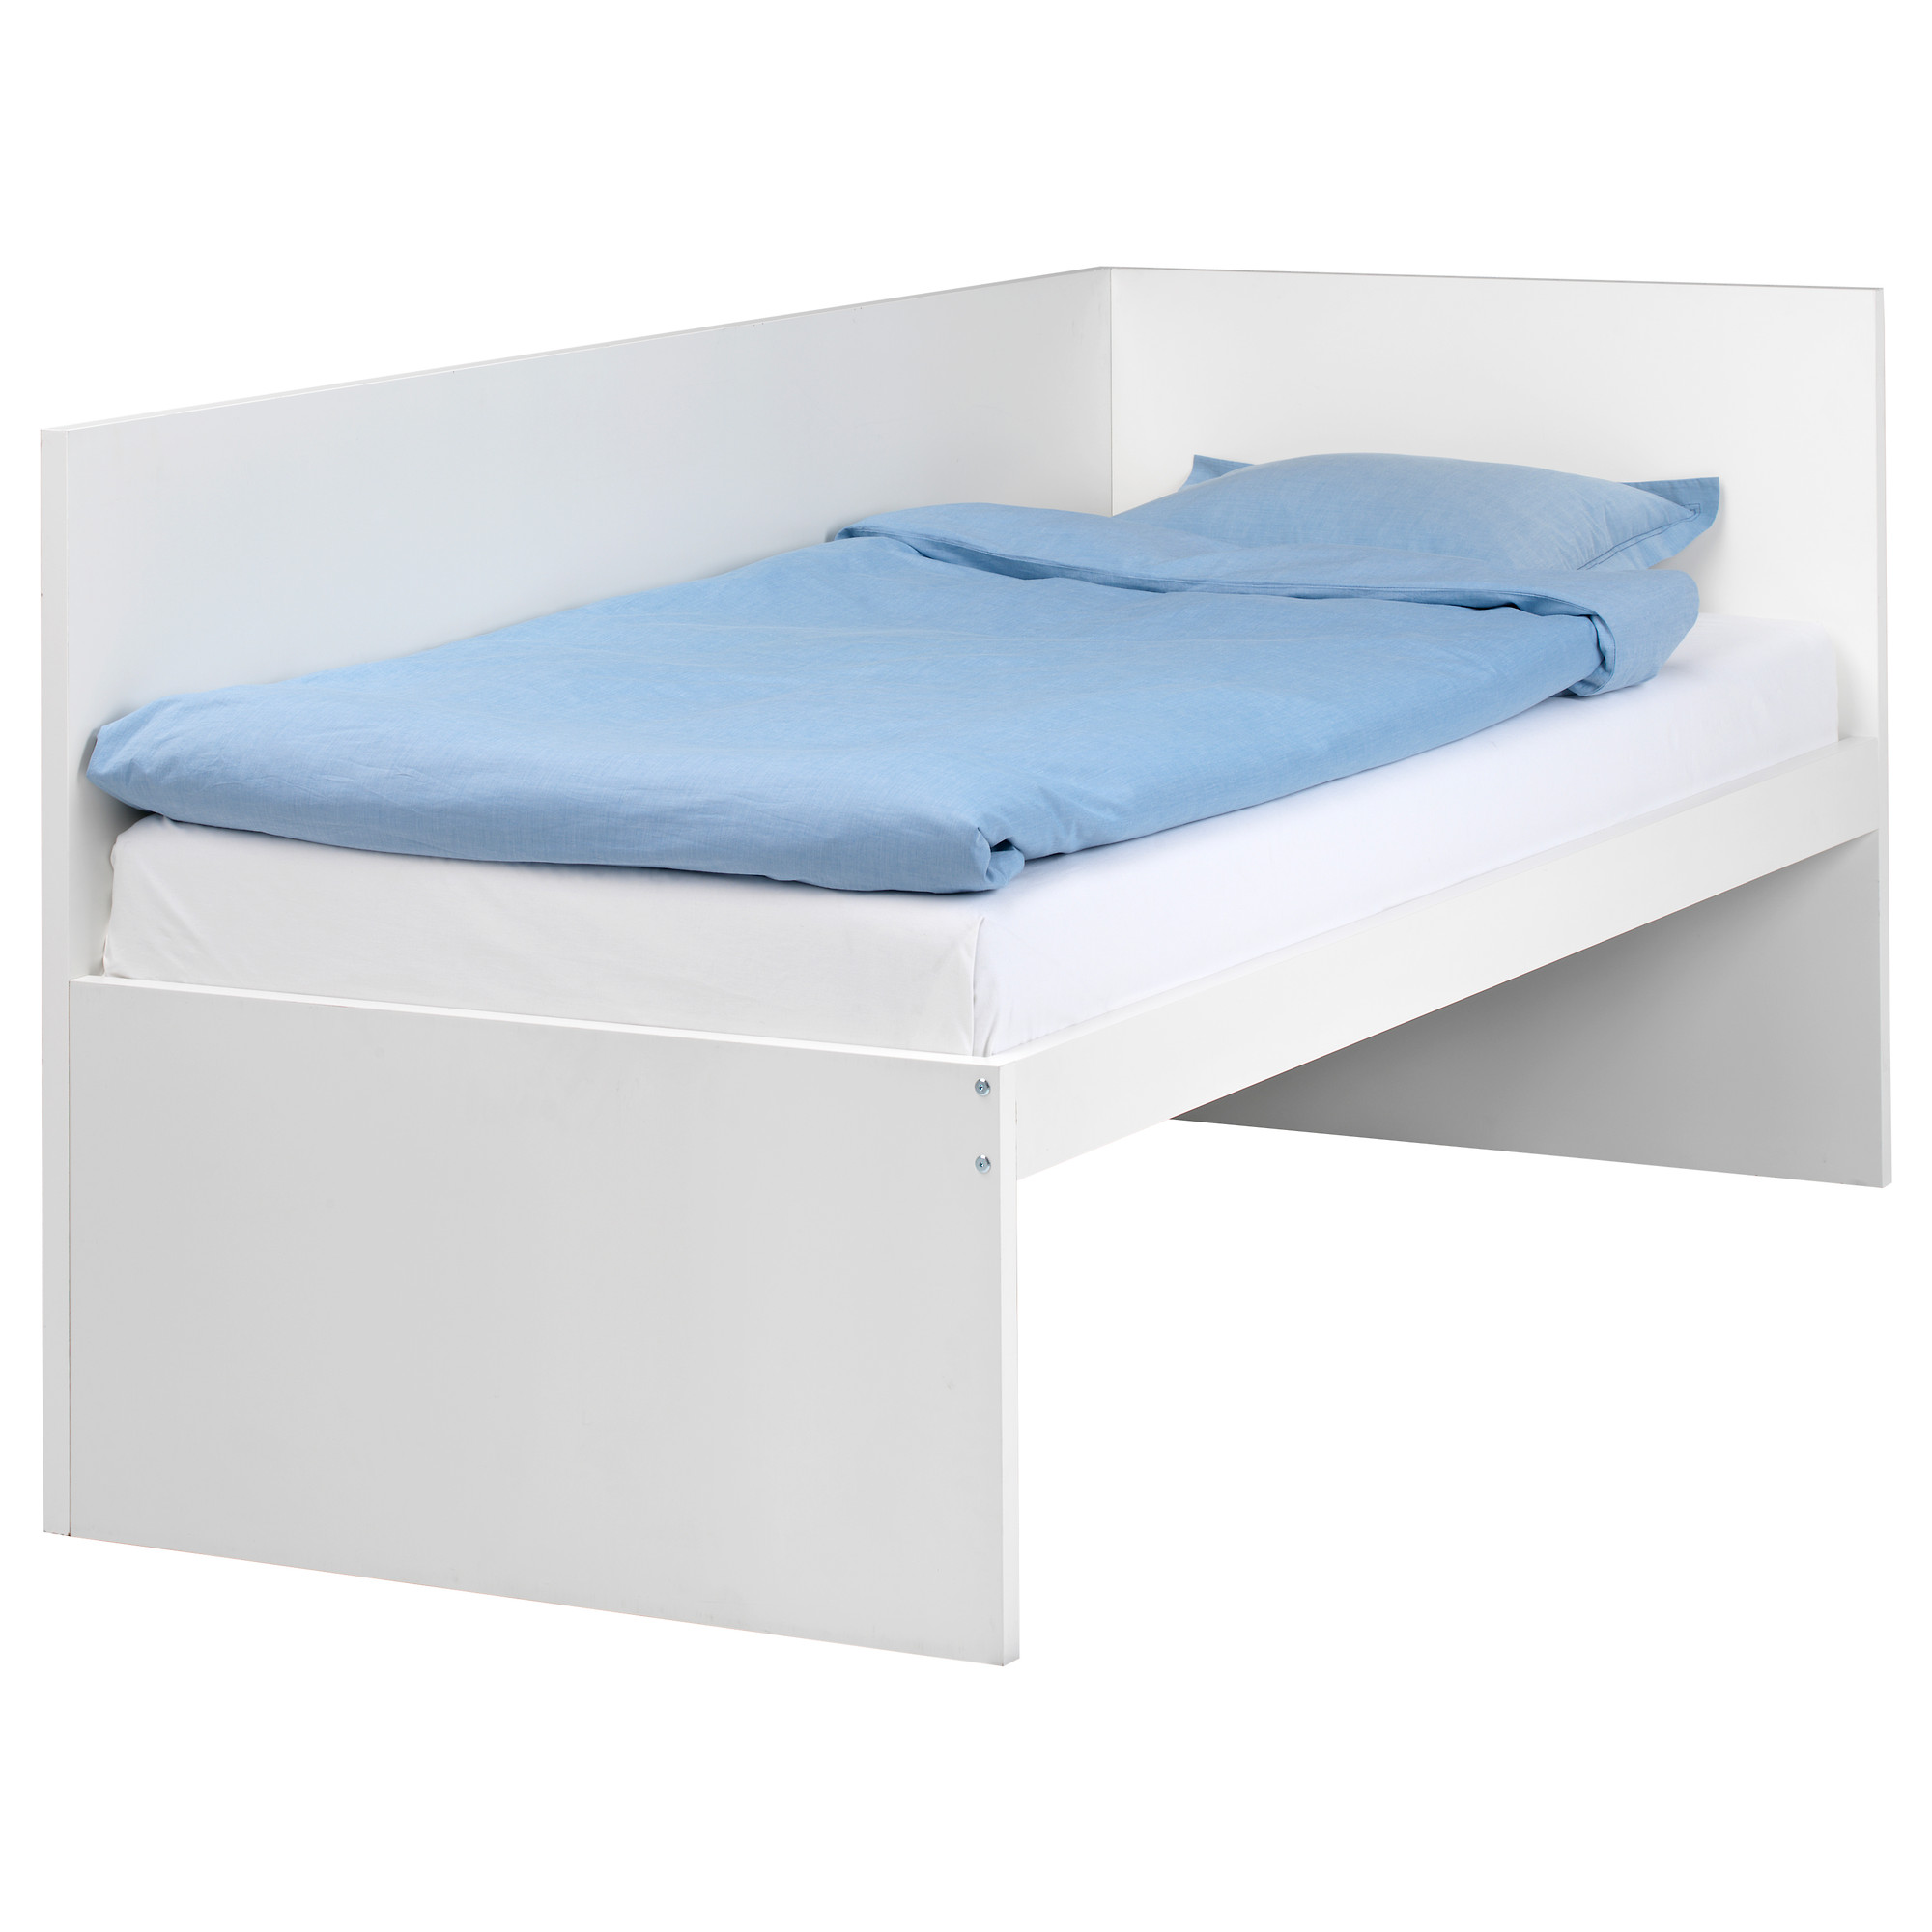 Interesting brimnes daybed for small bedroom ideas with ikea brimnes daybed